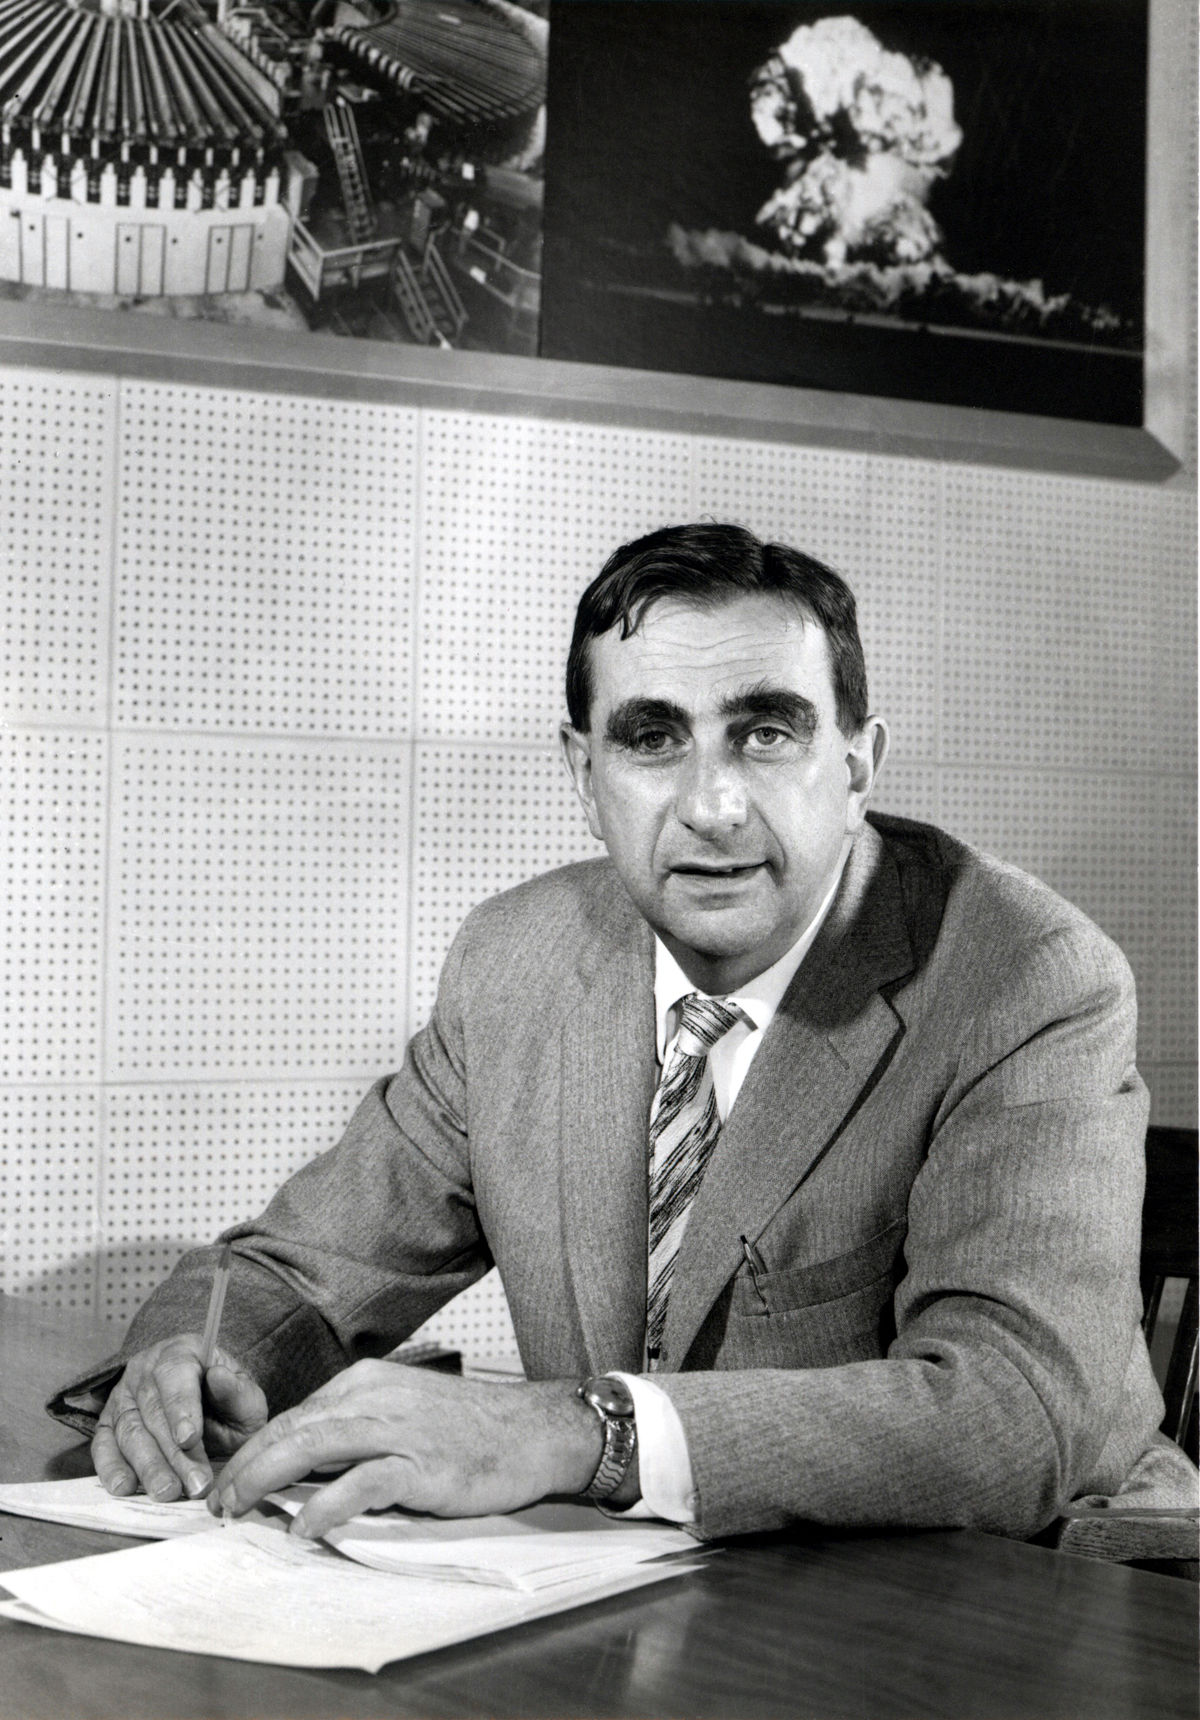 Dr. Edward Teller - The Size And Nature Of The Universe - The Theory Of Relativity